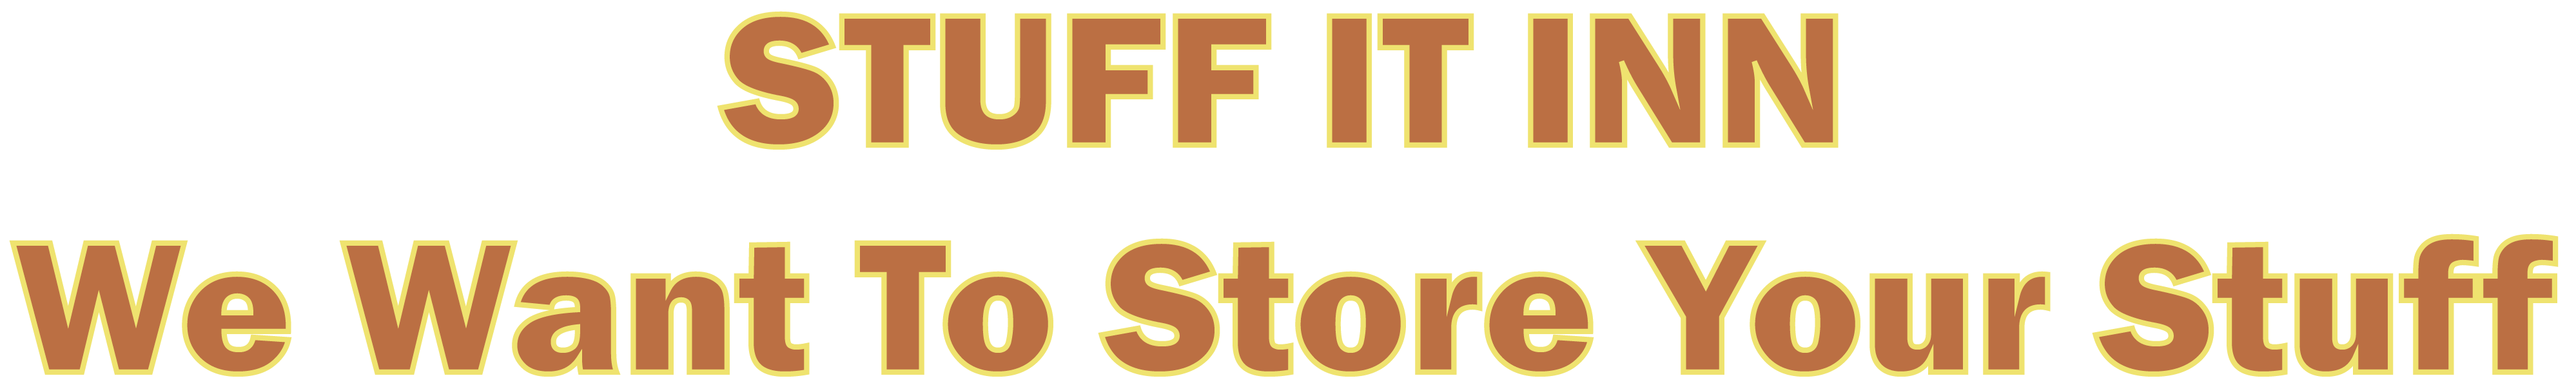 Stuff It Inn - We Want To Store Your Stuff